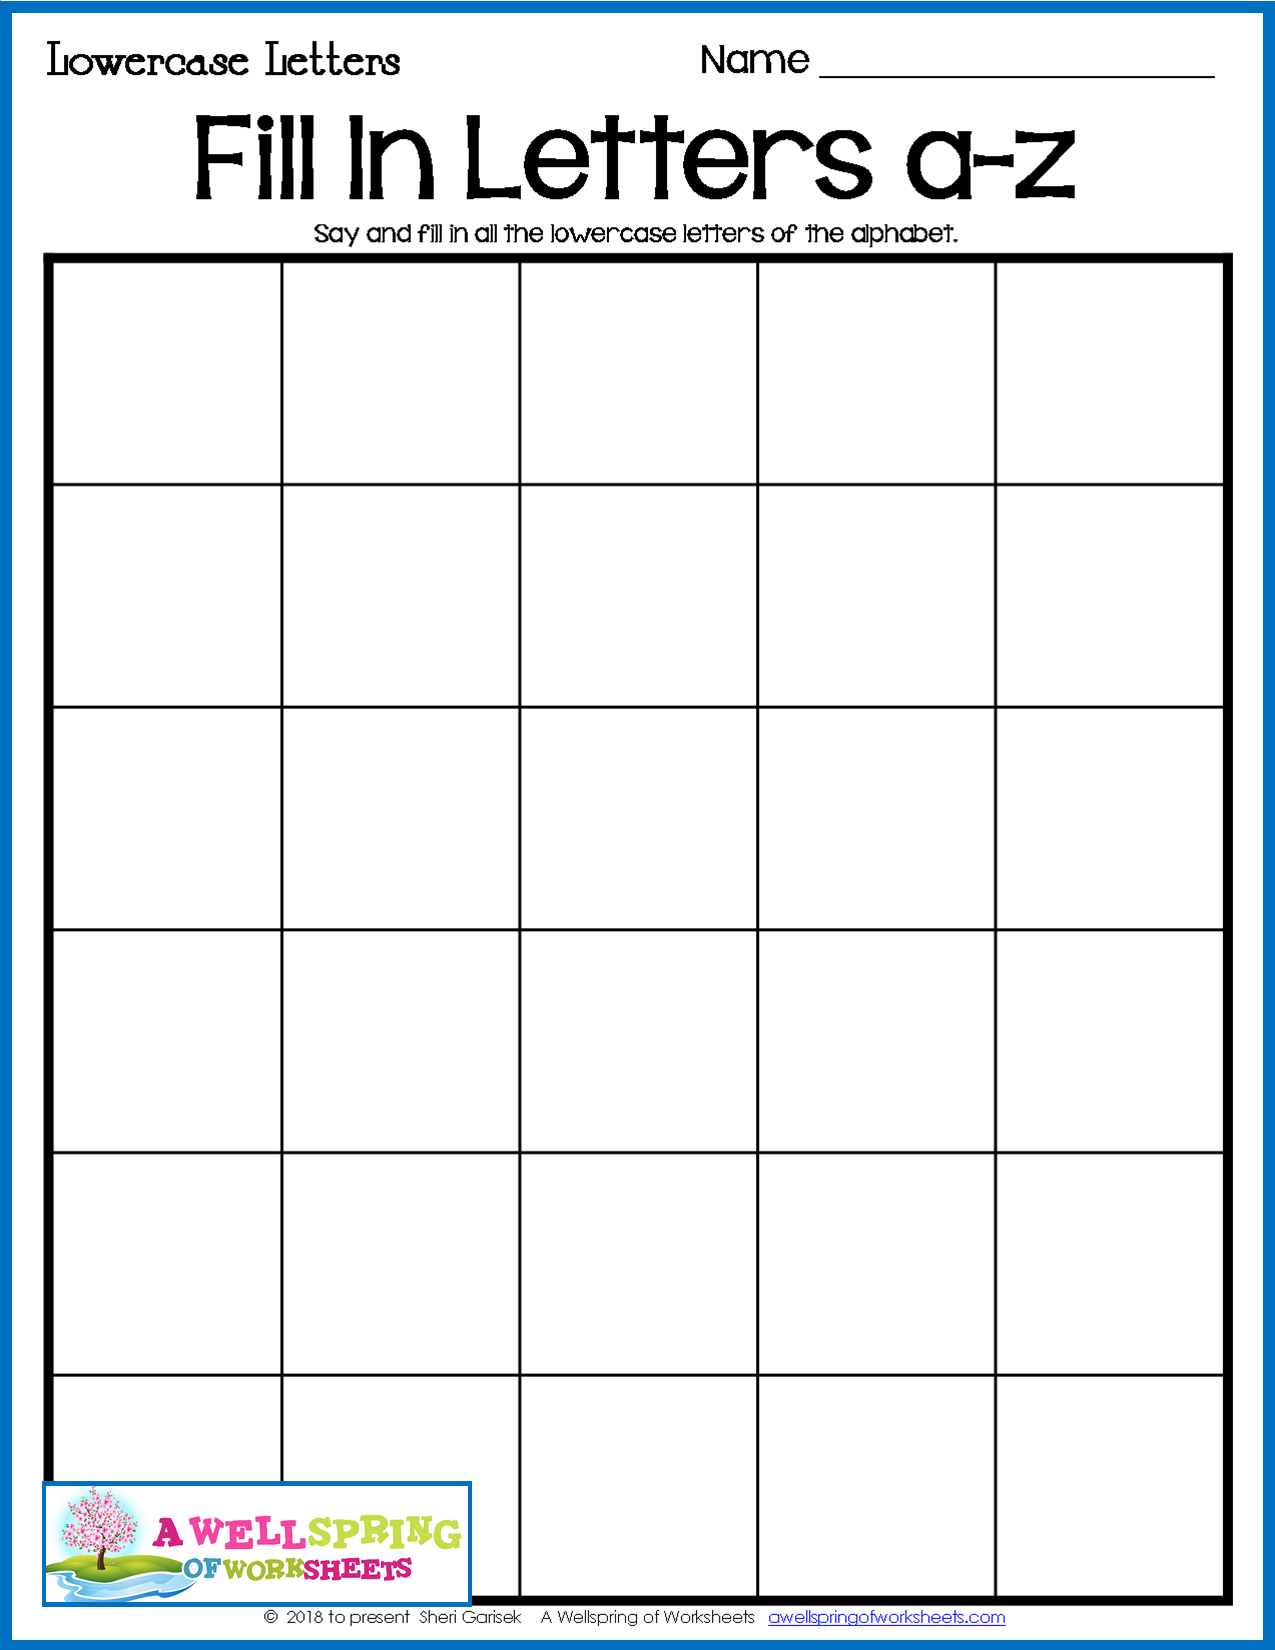 Missing Letters Fill In The Missing Alphabet Letters Awesome Assessment Alphabet Letter Worksheets Lowercase Letters Practice Letter Worksheets For Preschool [ 1650 x 1275 Pixel ]